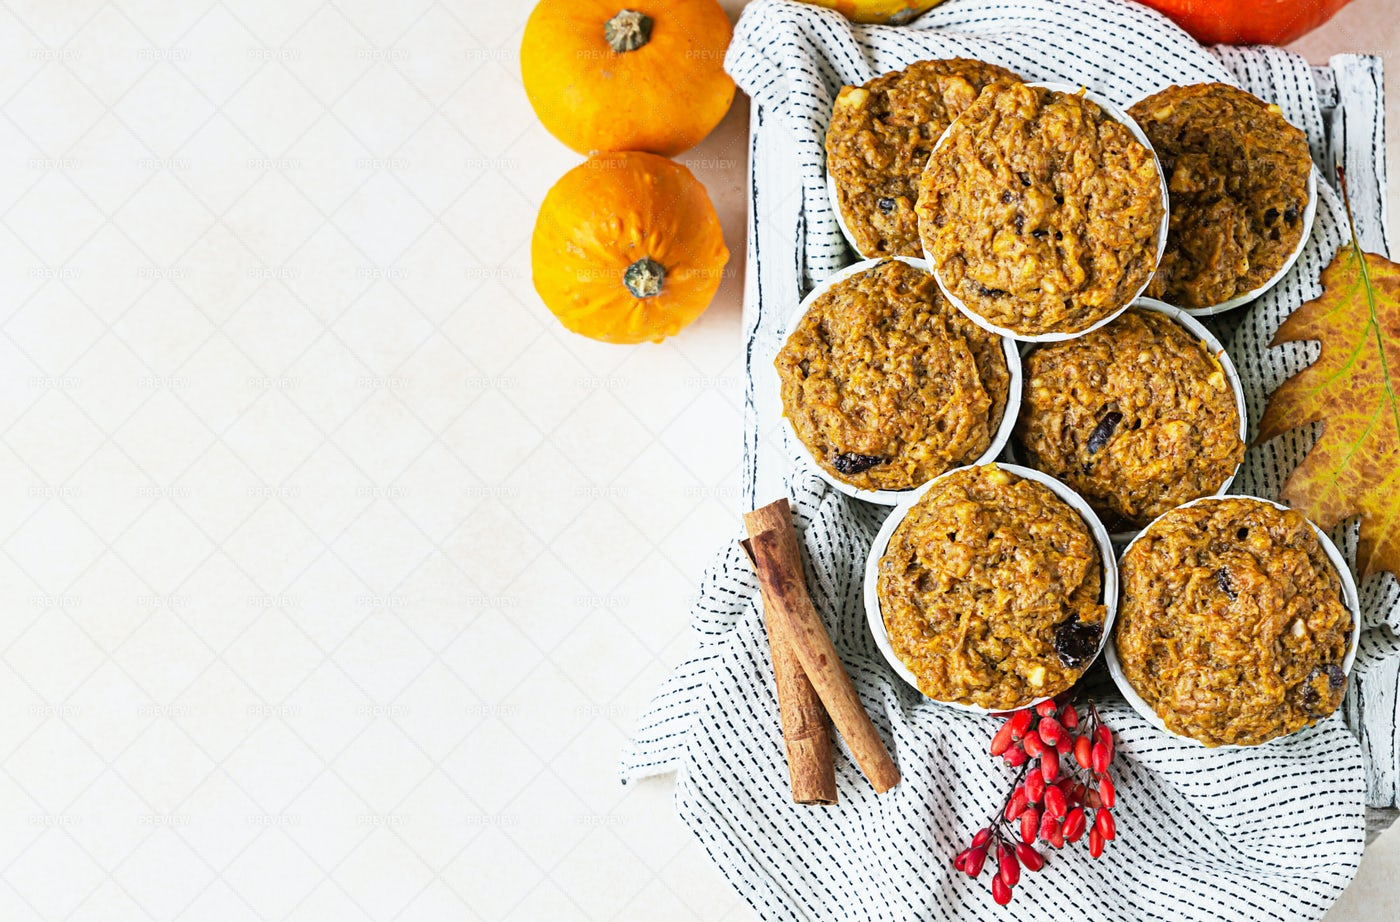 Wooden Tray With Muffins: Stock Photos